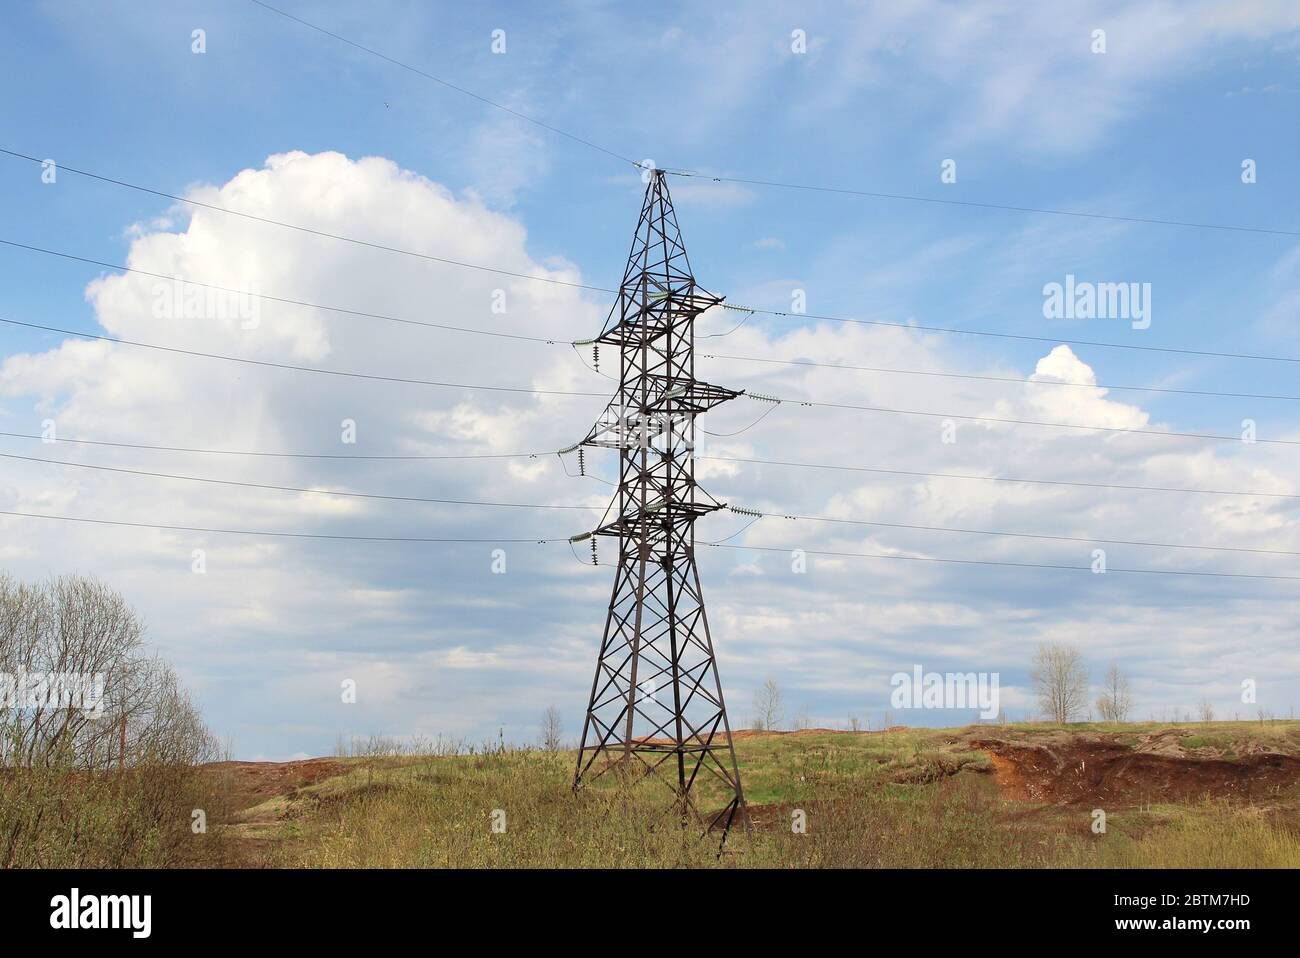 Iron pylon of a high voltage power line stands in a field against a blue sky. Stock Photo